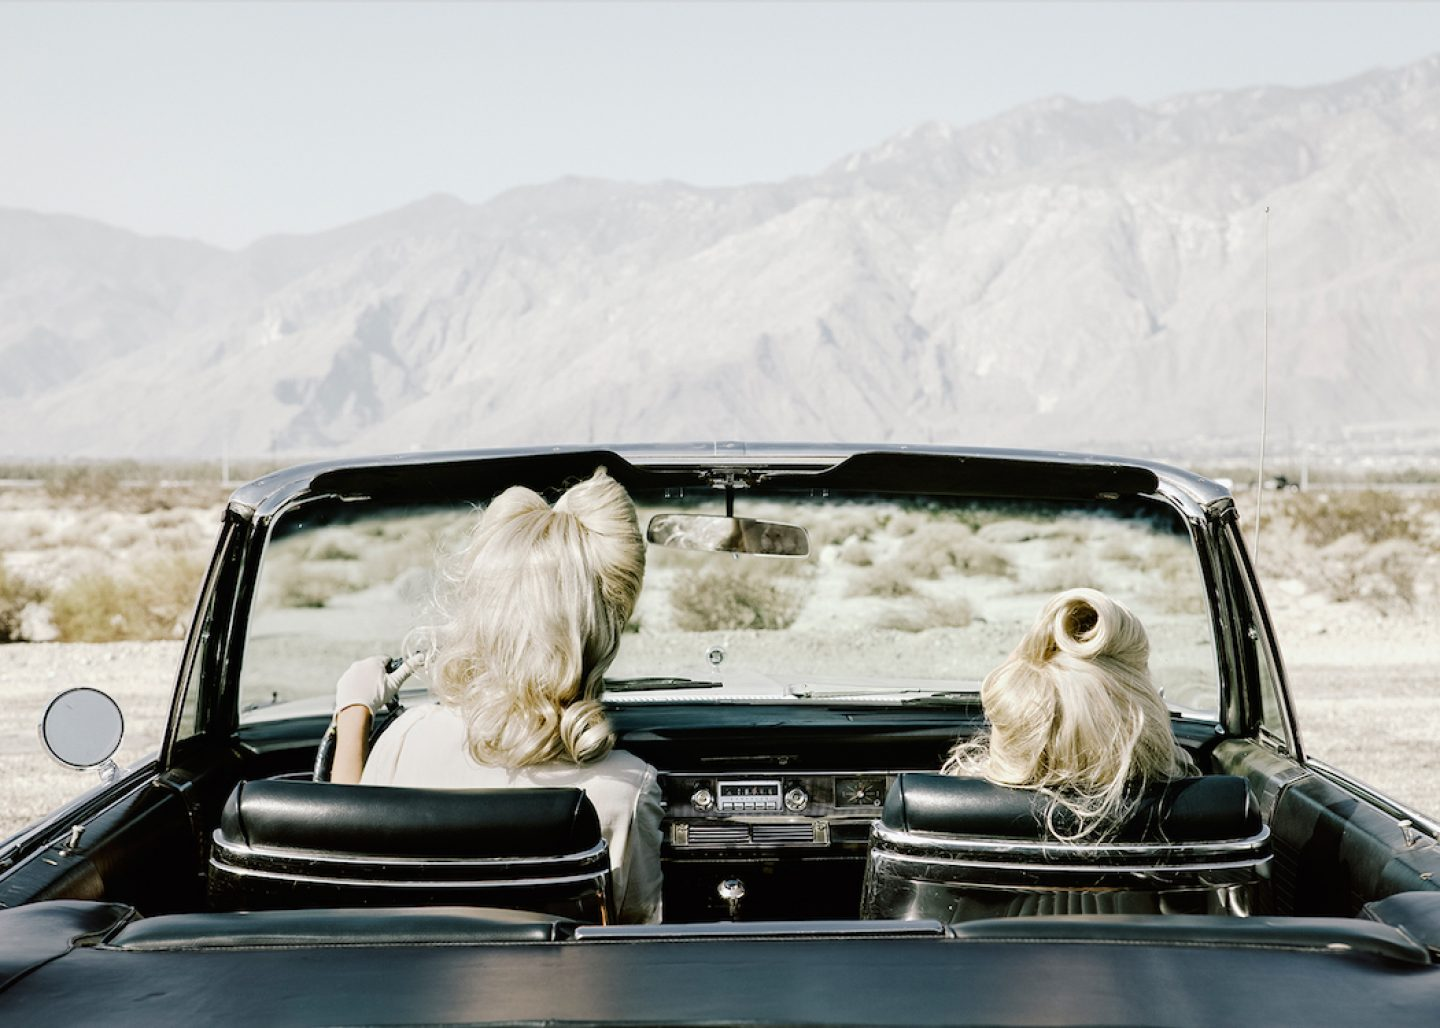 anjaniemi_photography-The Chrysler © Anja Niemi